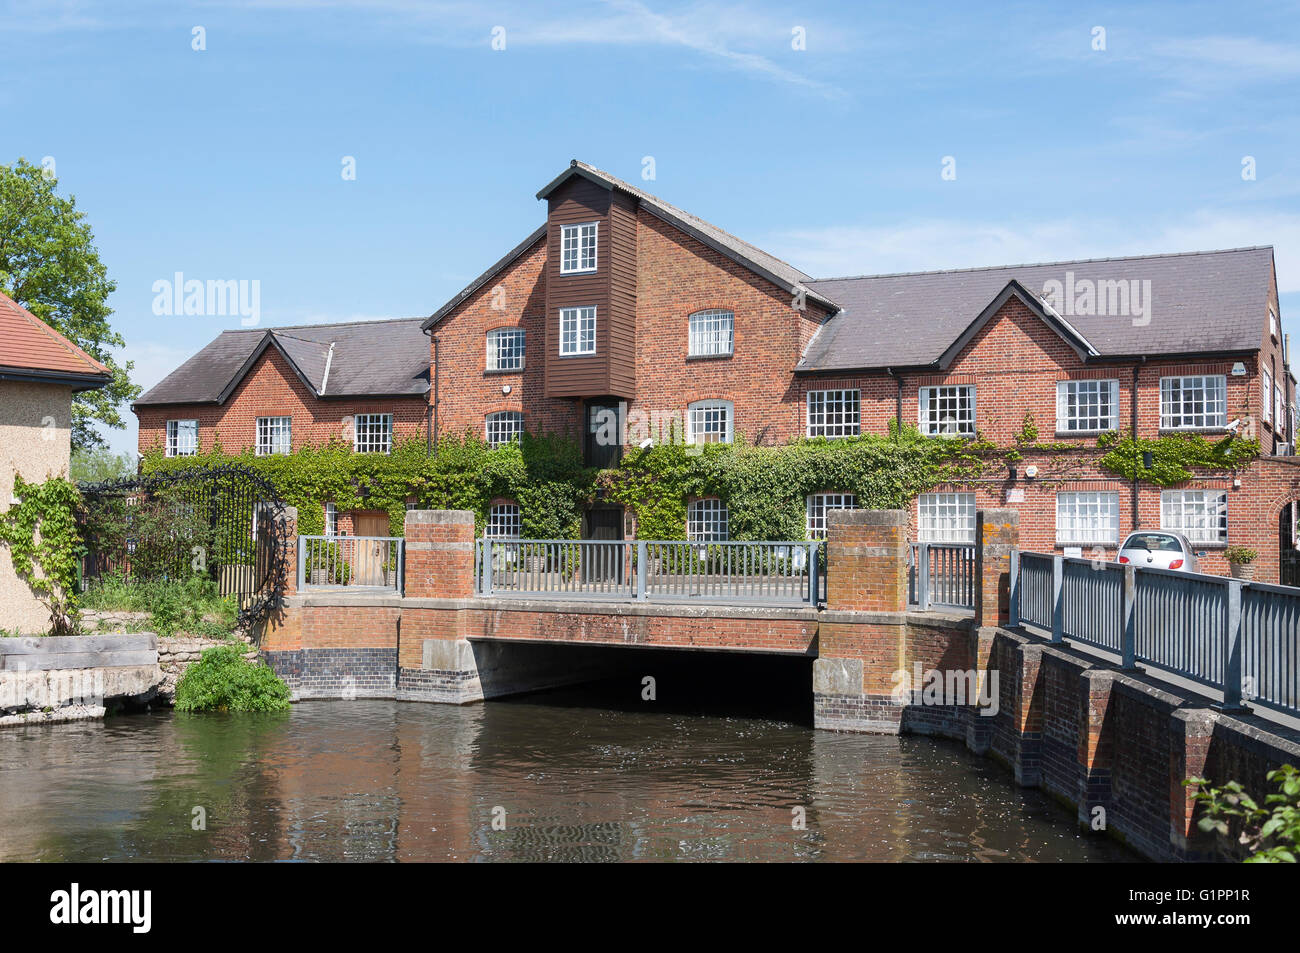 The Old Mill House and River Colne, Horton Road, Stanwell Moor, Surrey, England, United Kingdom - Stock Image